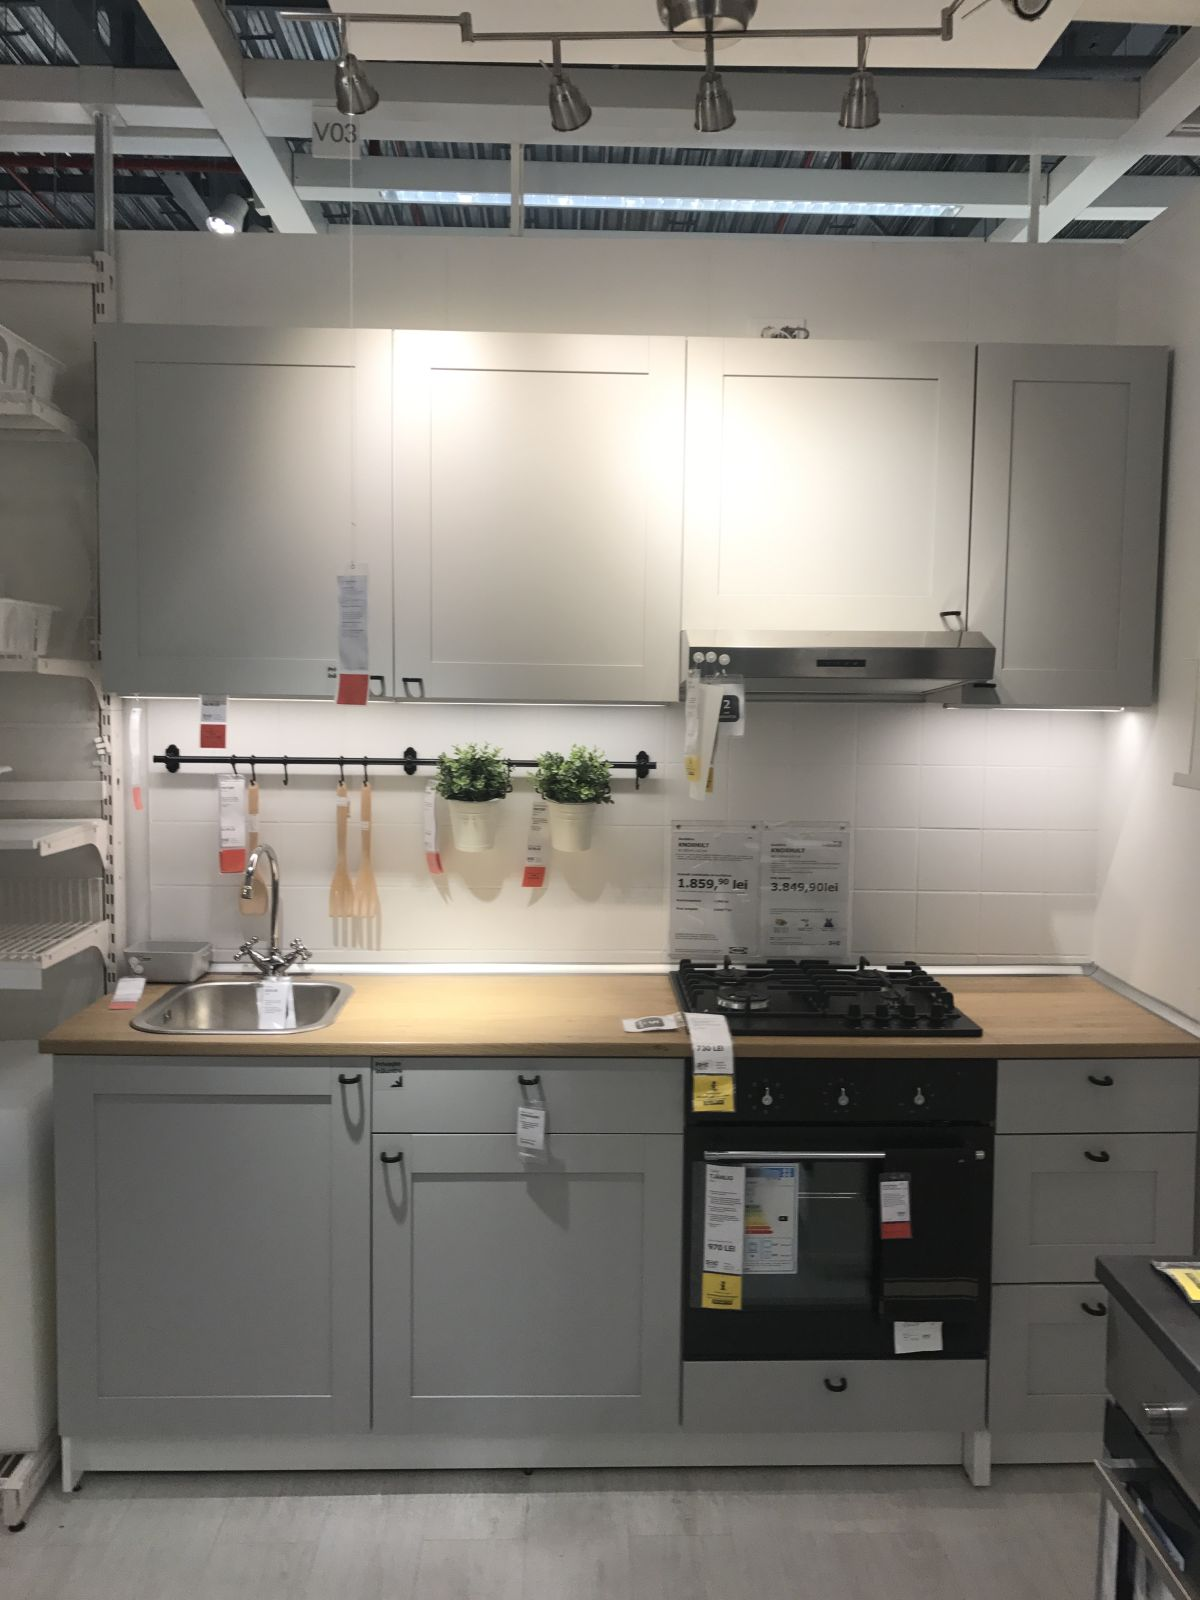 Ikea Kitchen Design Company Create A Stylish Space Starting With An Ikea Kitchen Design